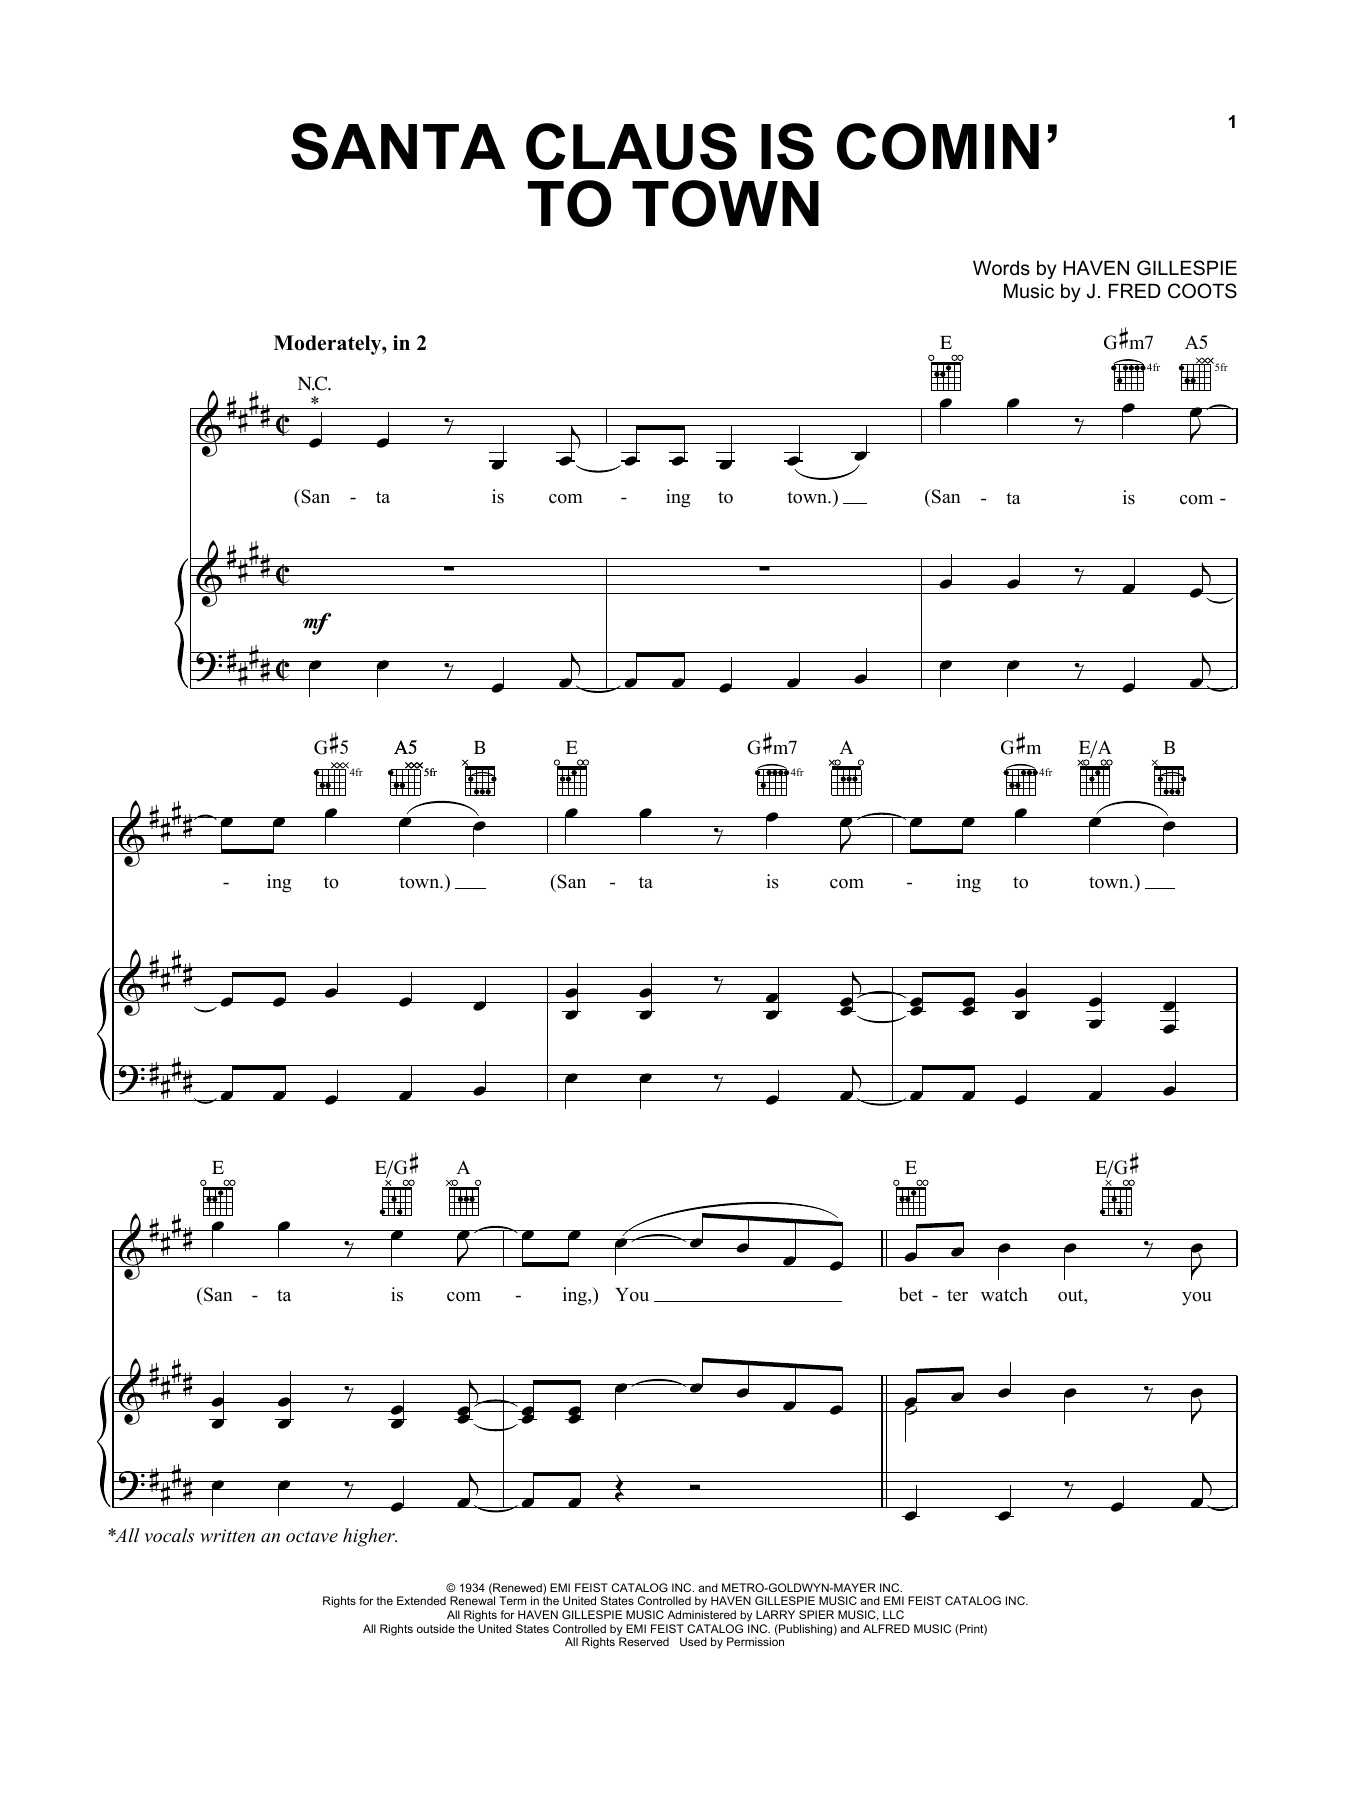 Pentatonix Santa Claus Is Comin' To Town sheet music notes and chords. Download Printable PDF.